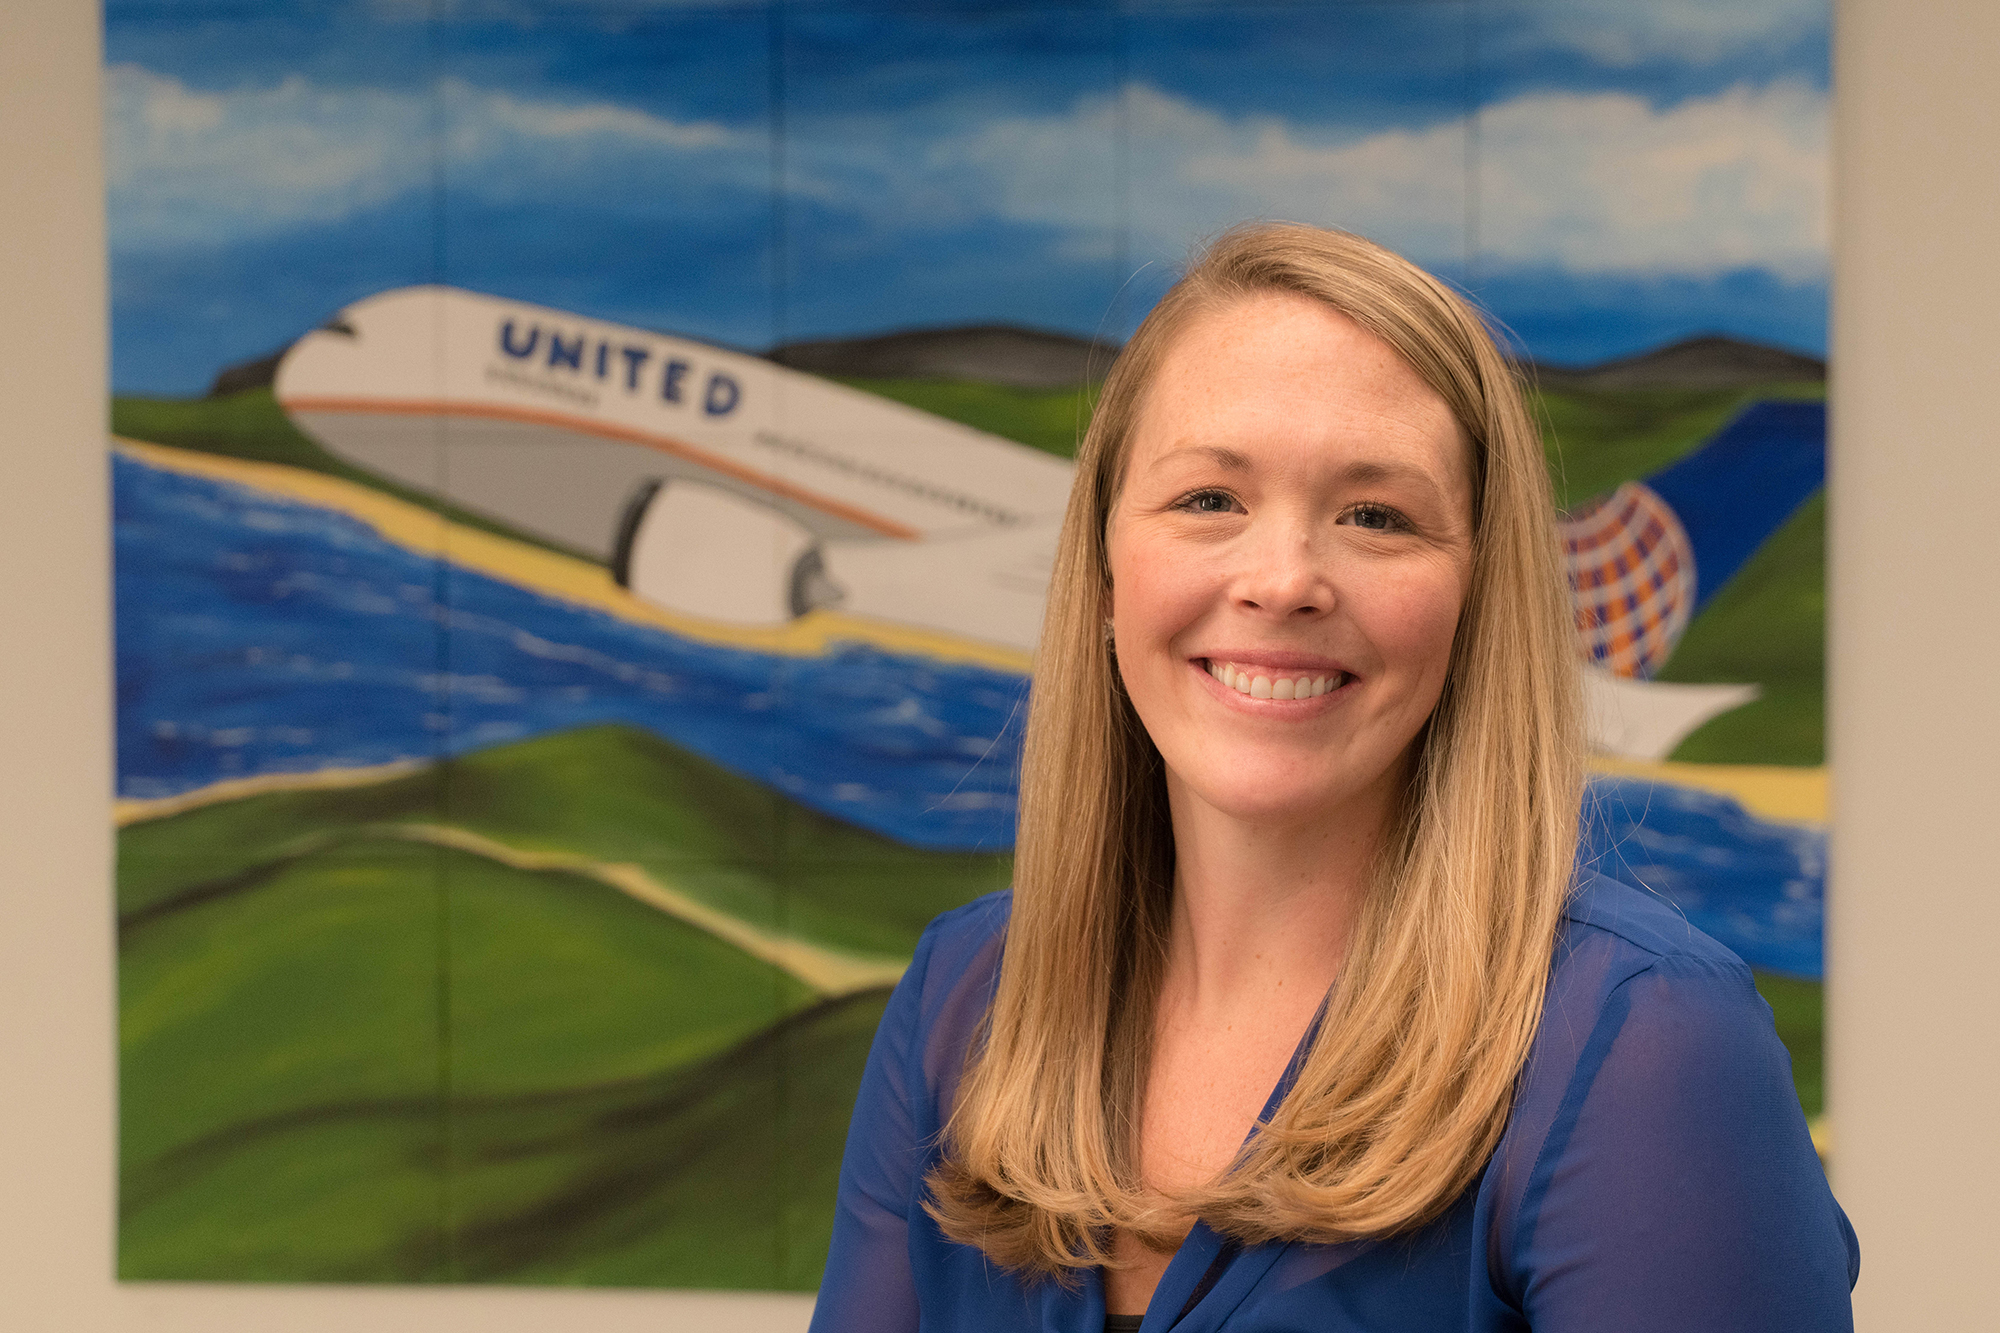 Michelle McCarthy, University of Iowa alumna, posing for a portrait in front of a United Airlines mural